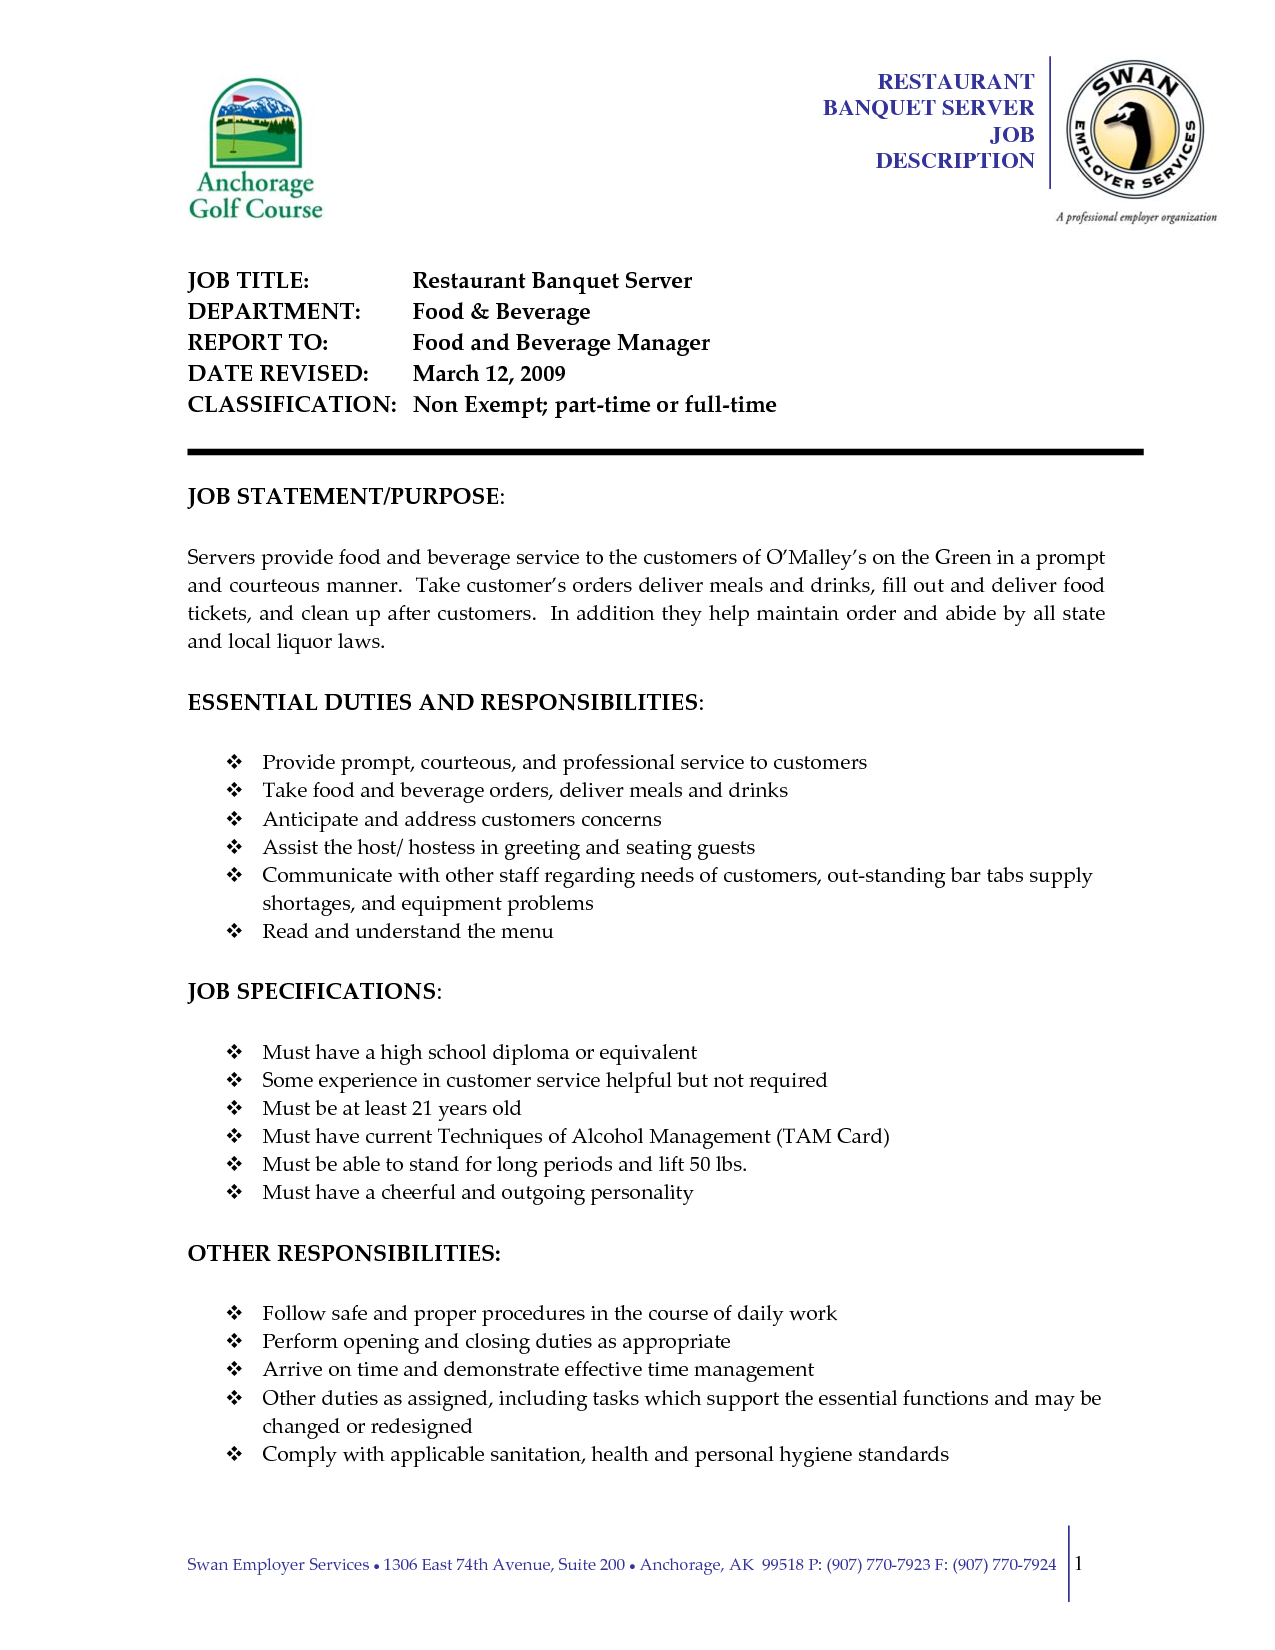 Server Resume Samples Serving Job Resume Examples Server Description Sample